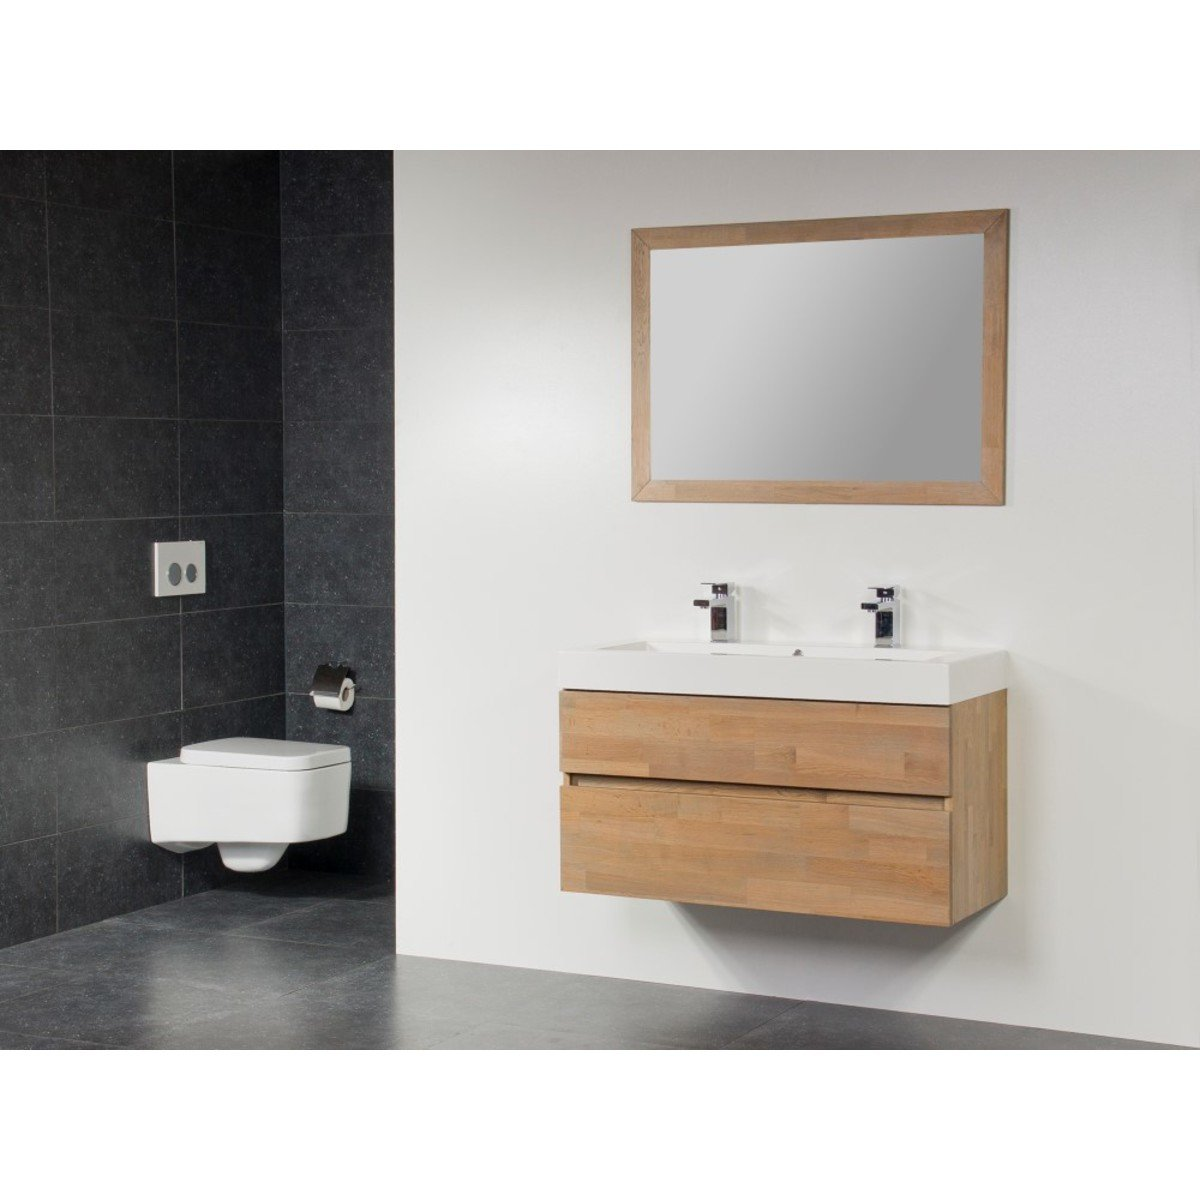 saniclass natural wood meuble salle de bain avec miroir 120cm suspendu grey wash avec vasque. Black Bedroom Furniture Sets. Home Design Ideas